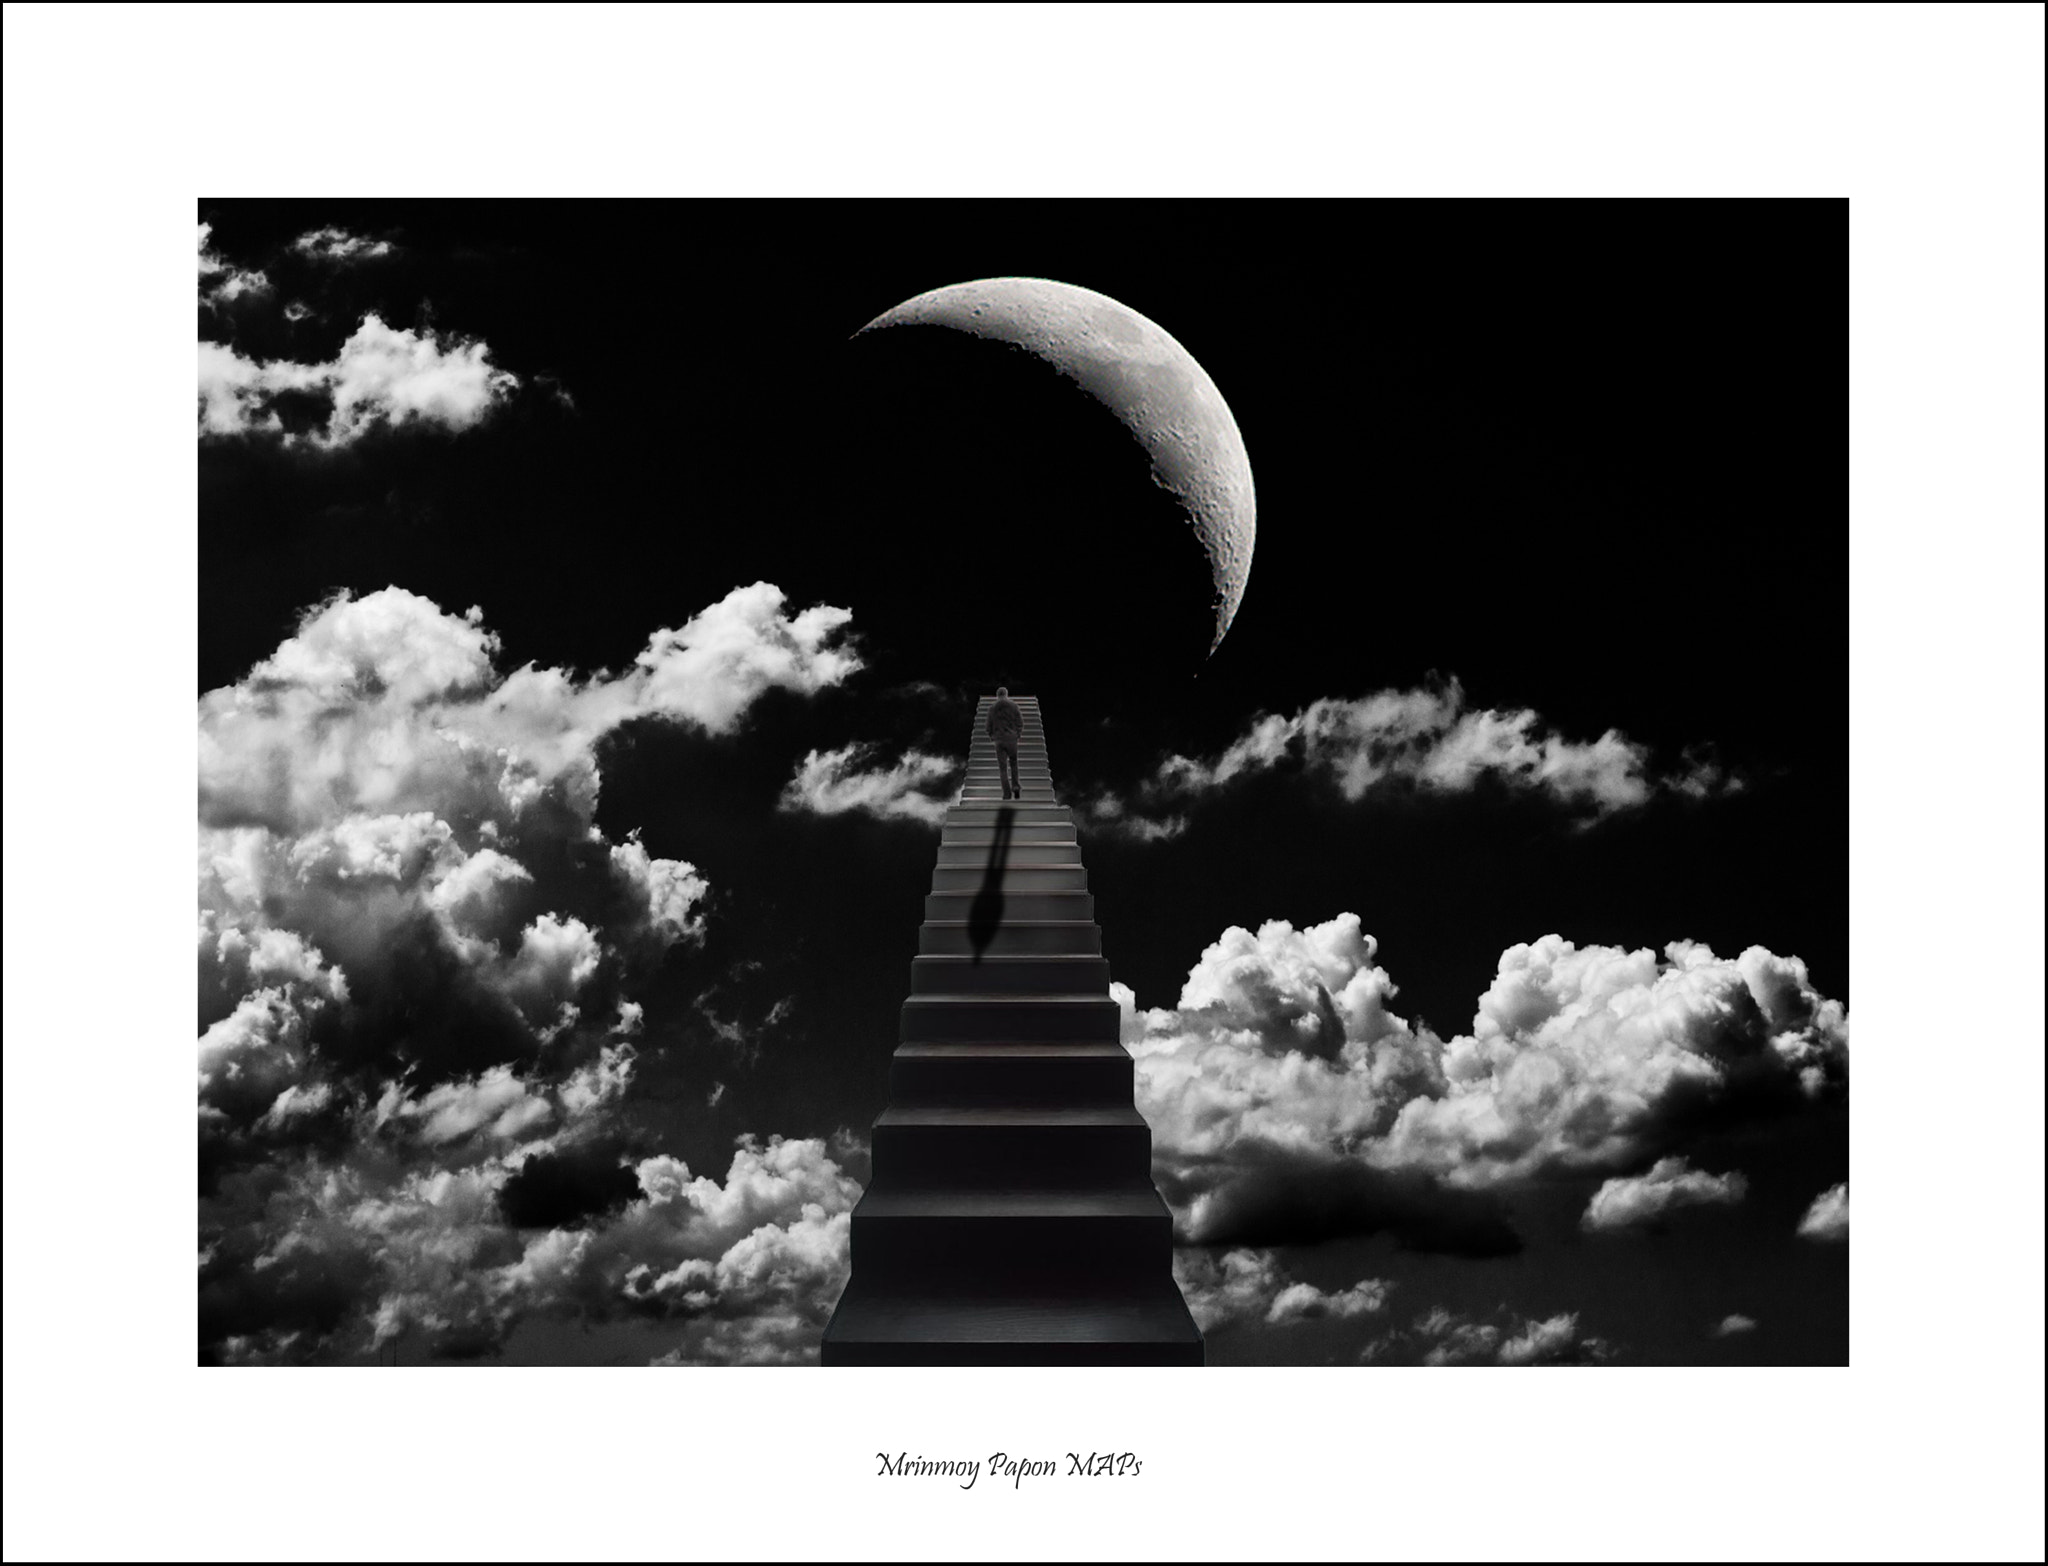 Photograph Stairways to Heaven by MAPs Papon ✈747 on 500px